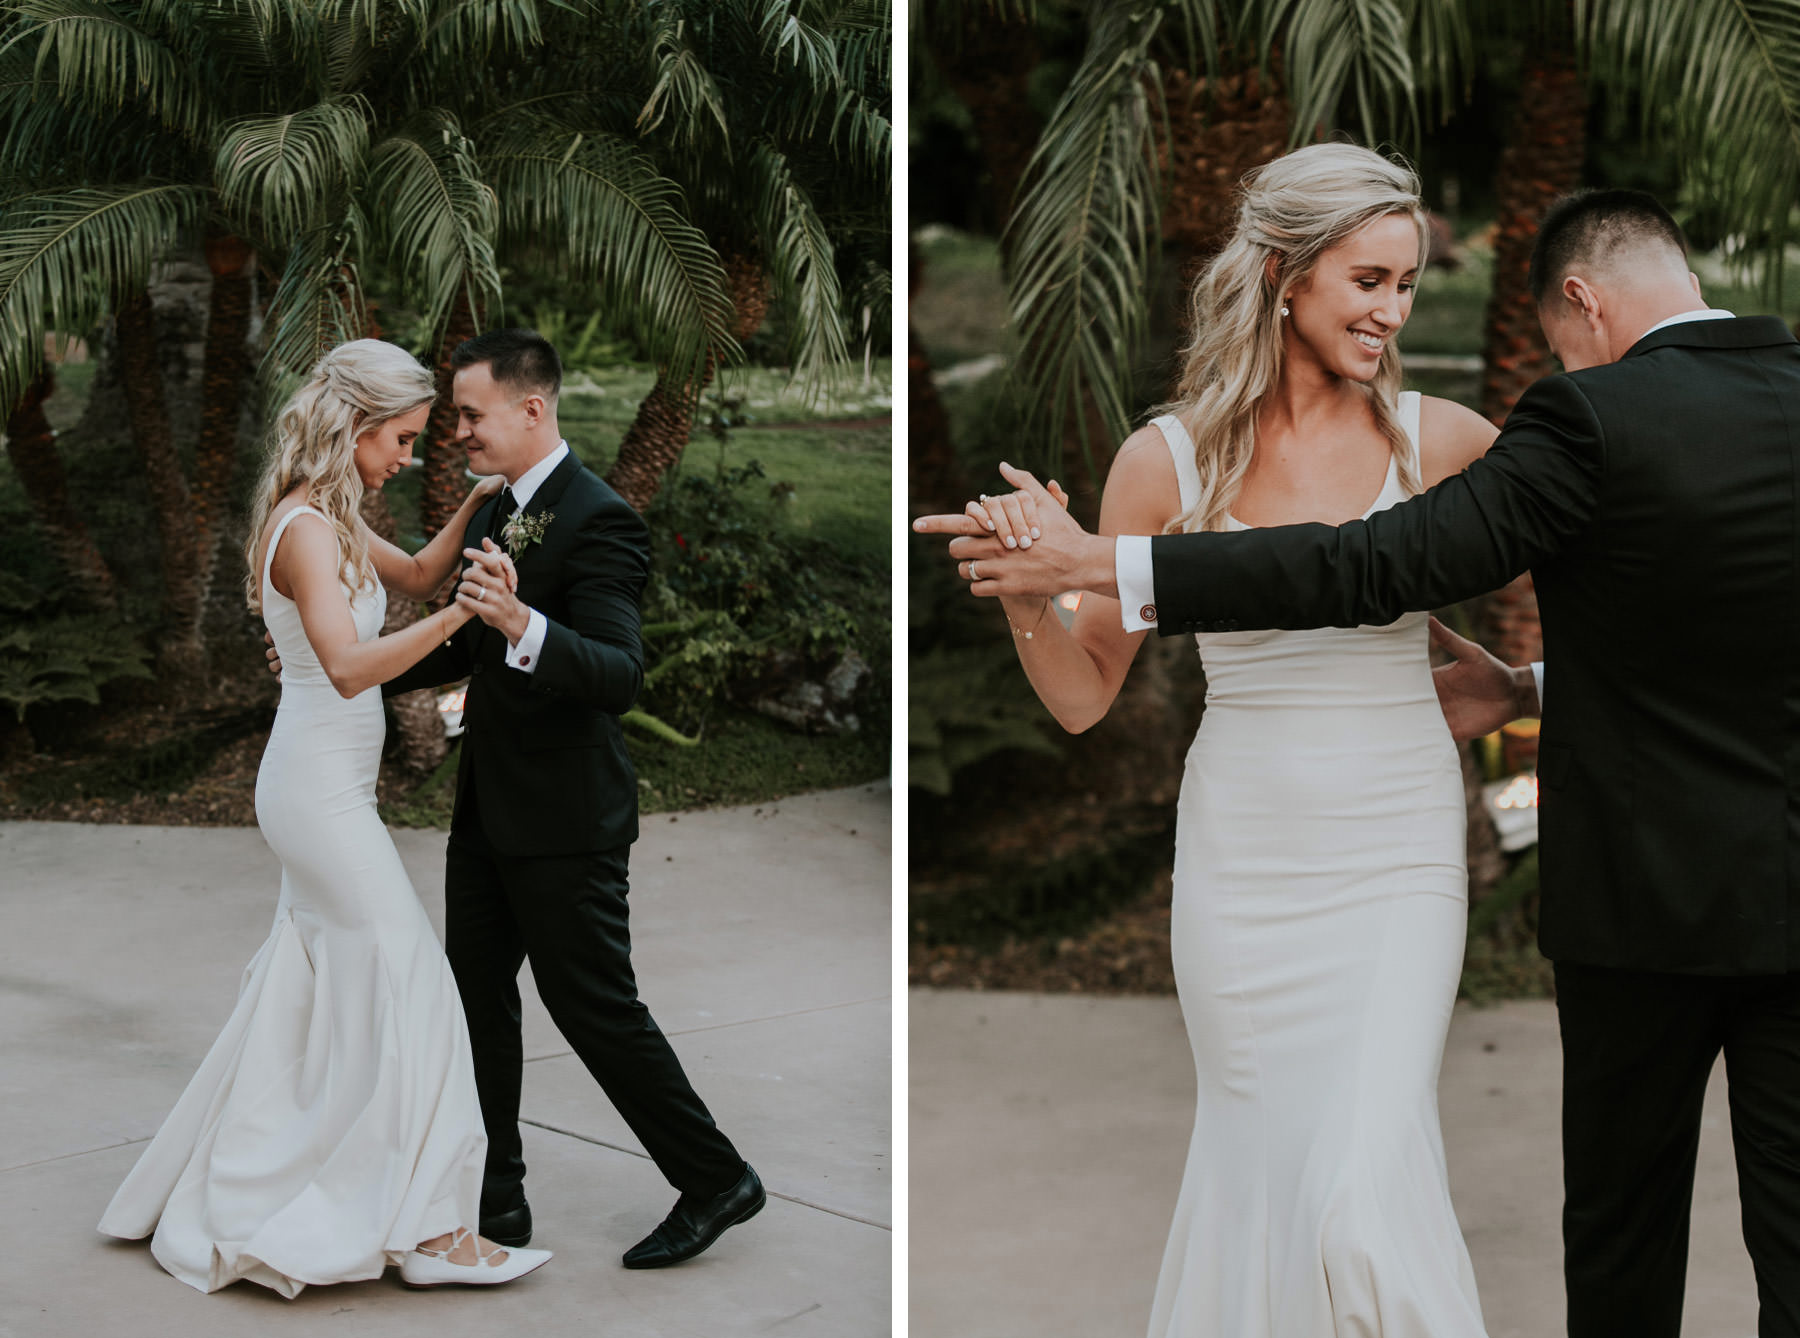 Bride and groom first dance at San Diego backyard wedding